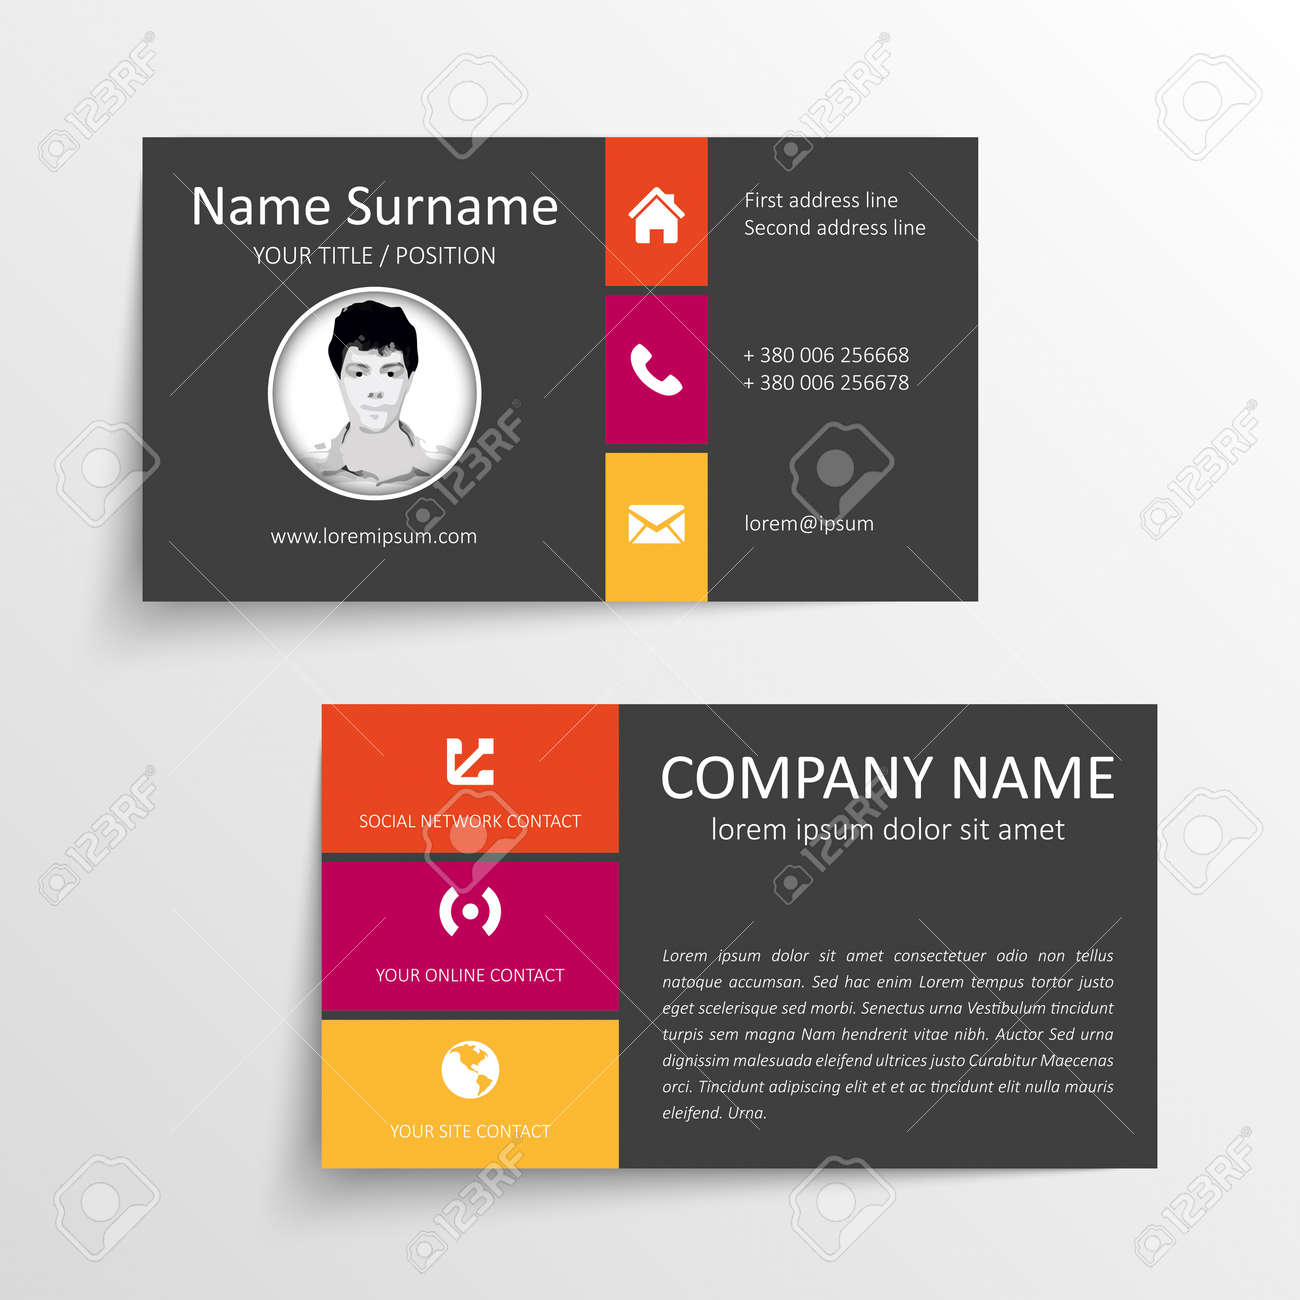 Modern simple business card template royalty free cliparts modern simple business card template stock vector 28040693 colourmoves